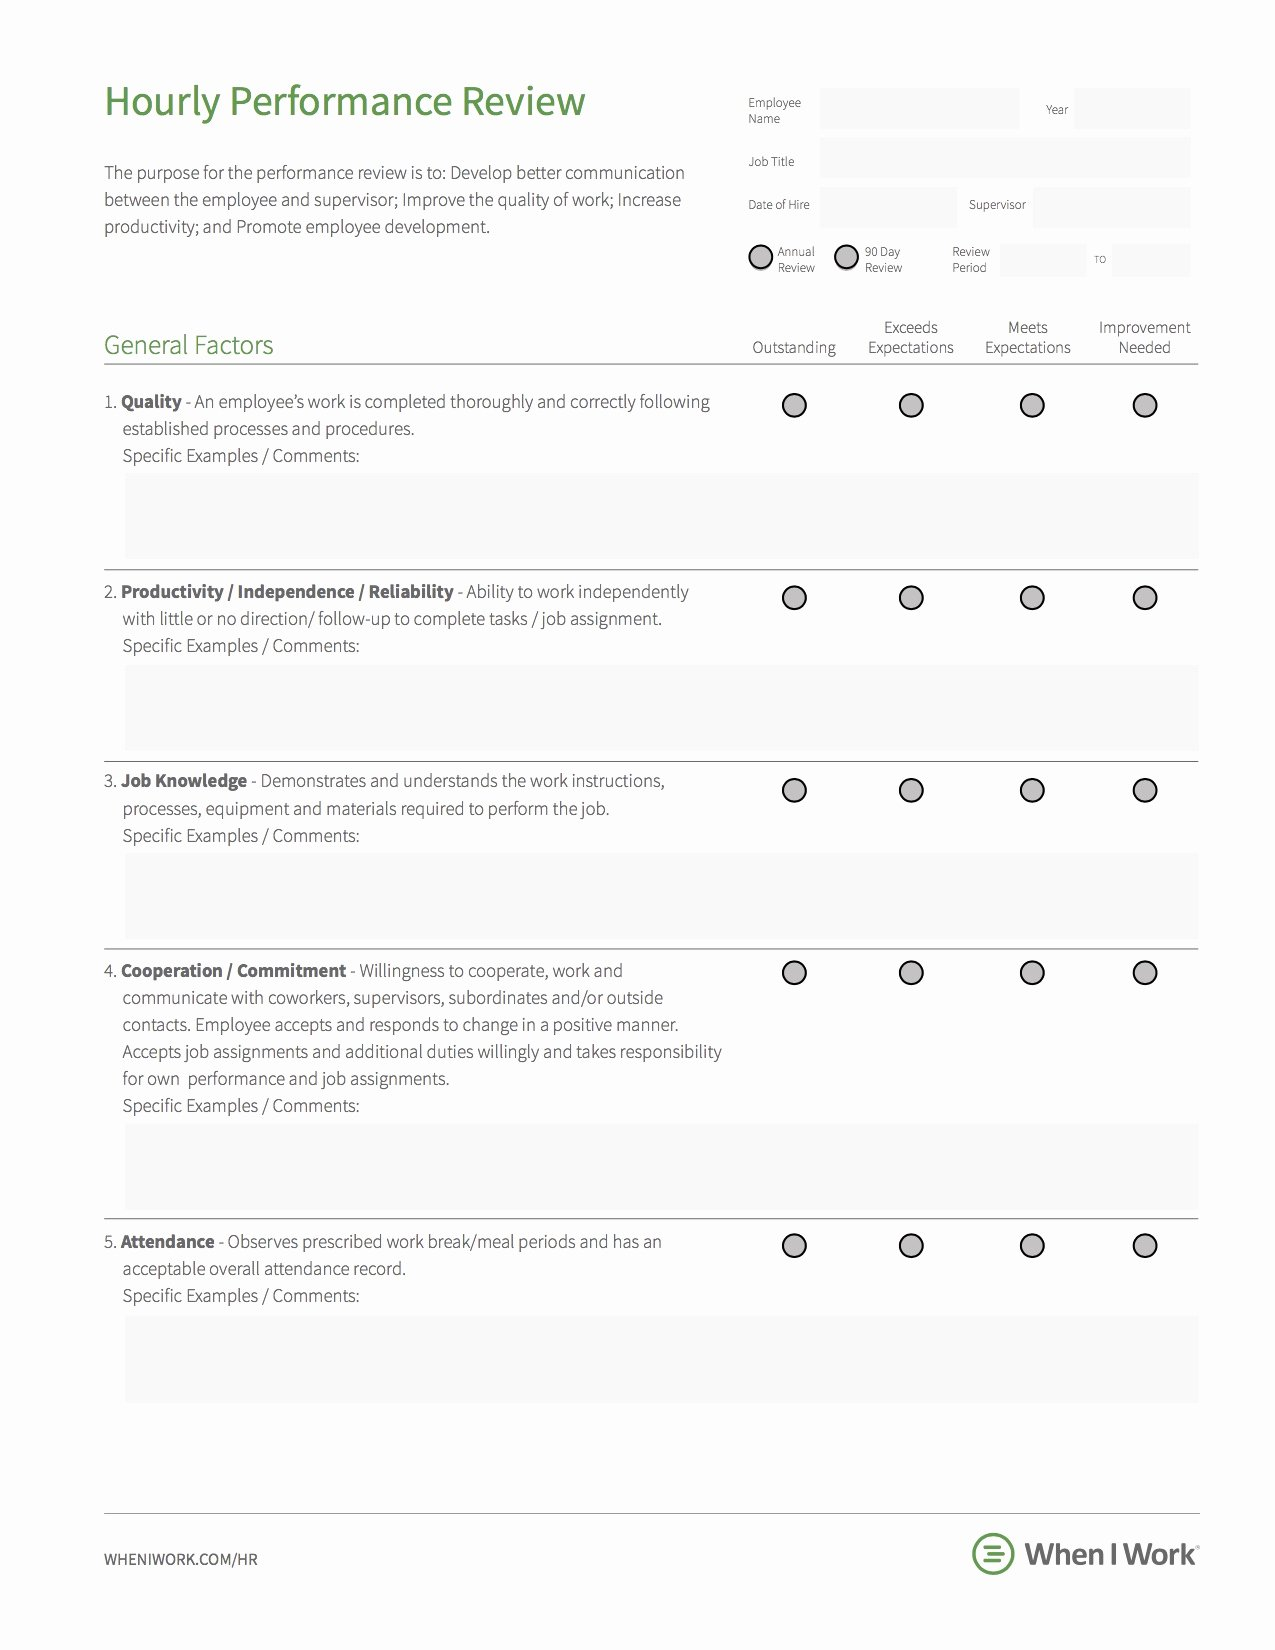 Employee Annual Review Template Inspirational 8 Best Practices for Building An Effective Employee